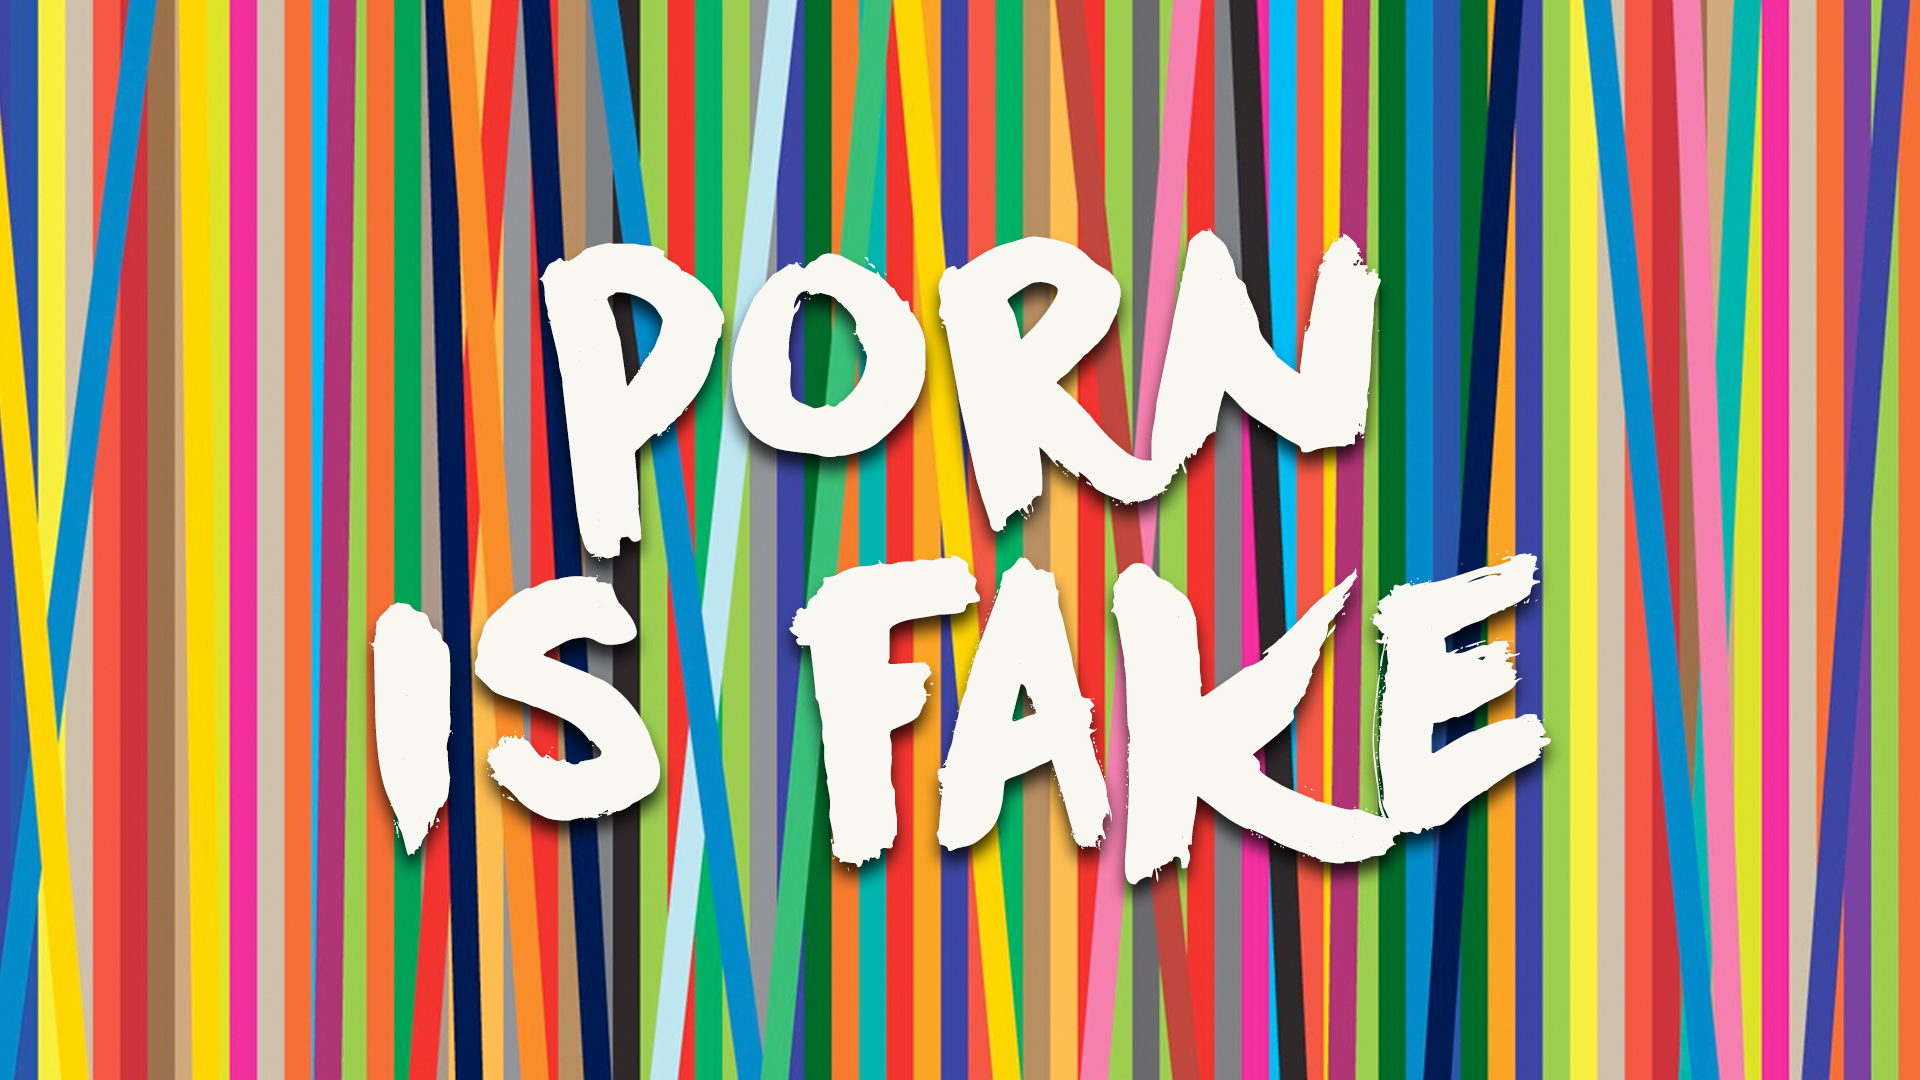 Porn Is Fake 1920x1080